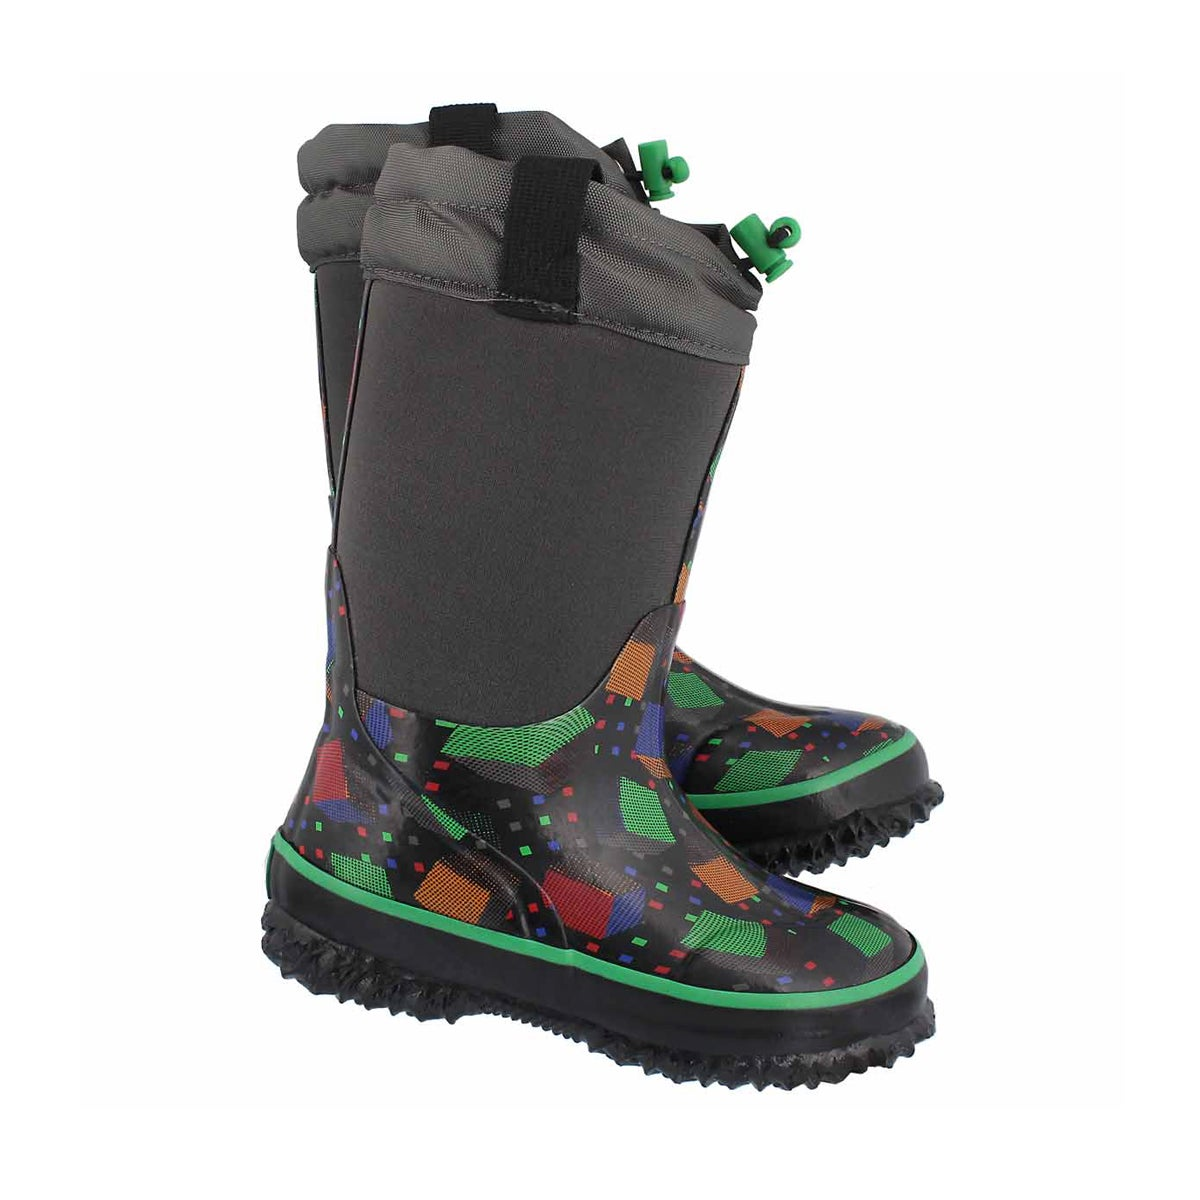 Bys Cubes blk wp pull on winter boot